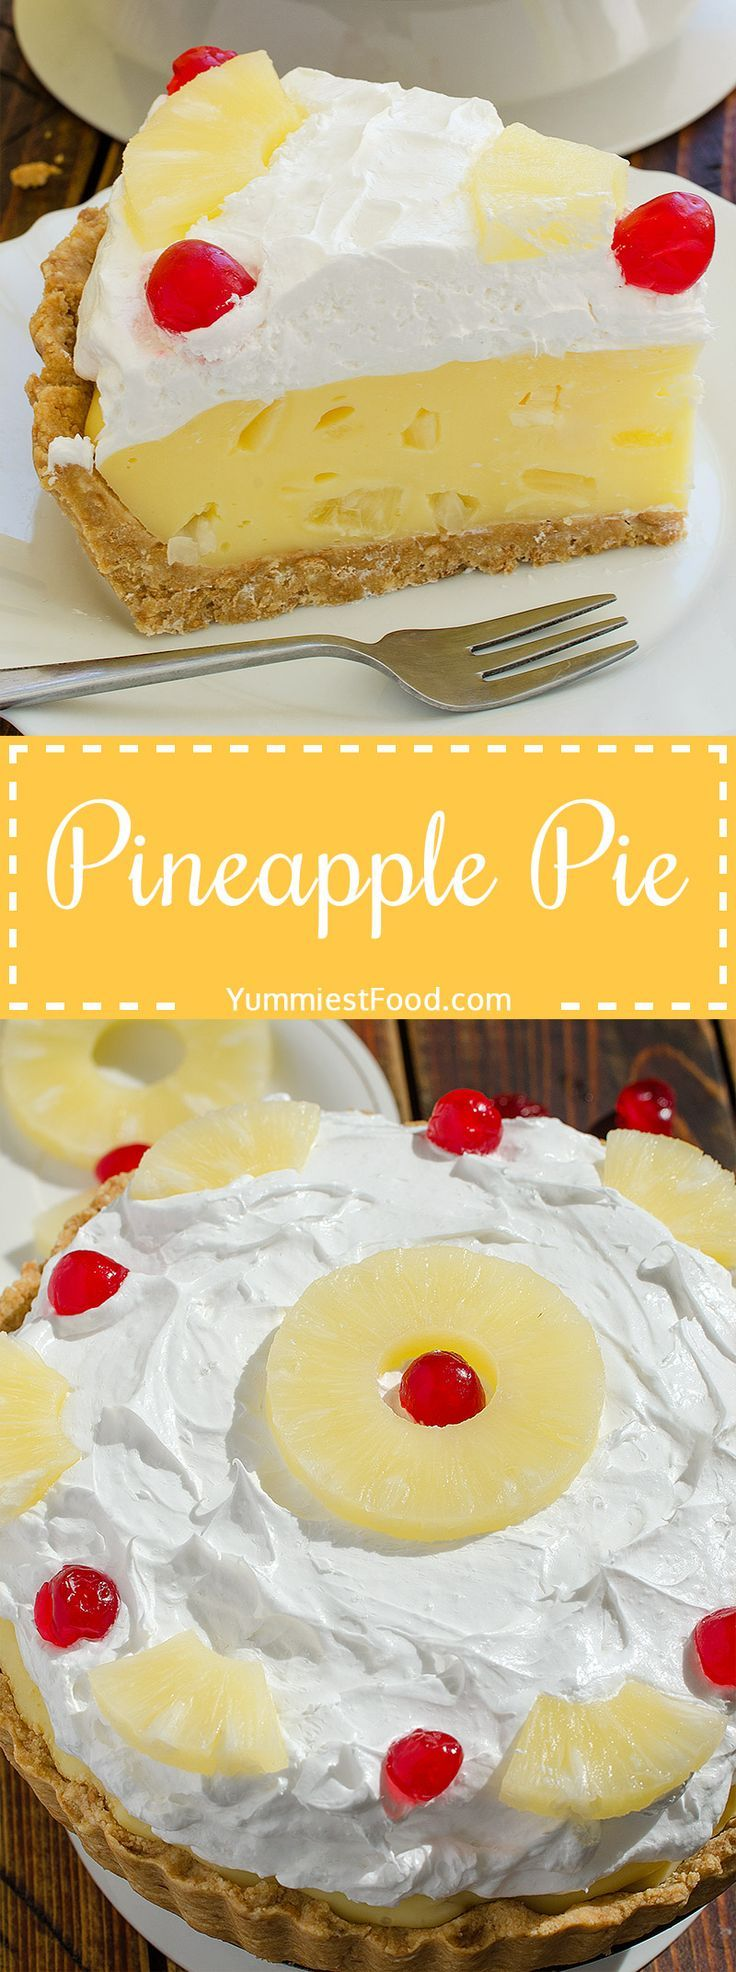 Pineapple Pie a quick recipe for creamy, refreshing and so delicious summer pie. Pineapple Pie the most easy and best tasting pie!